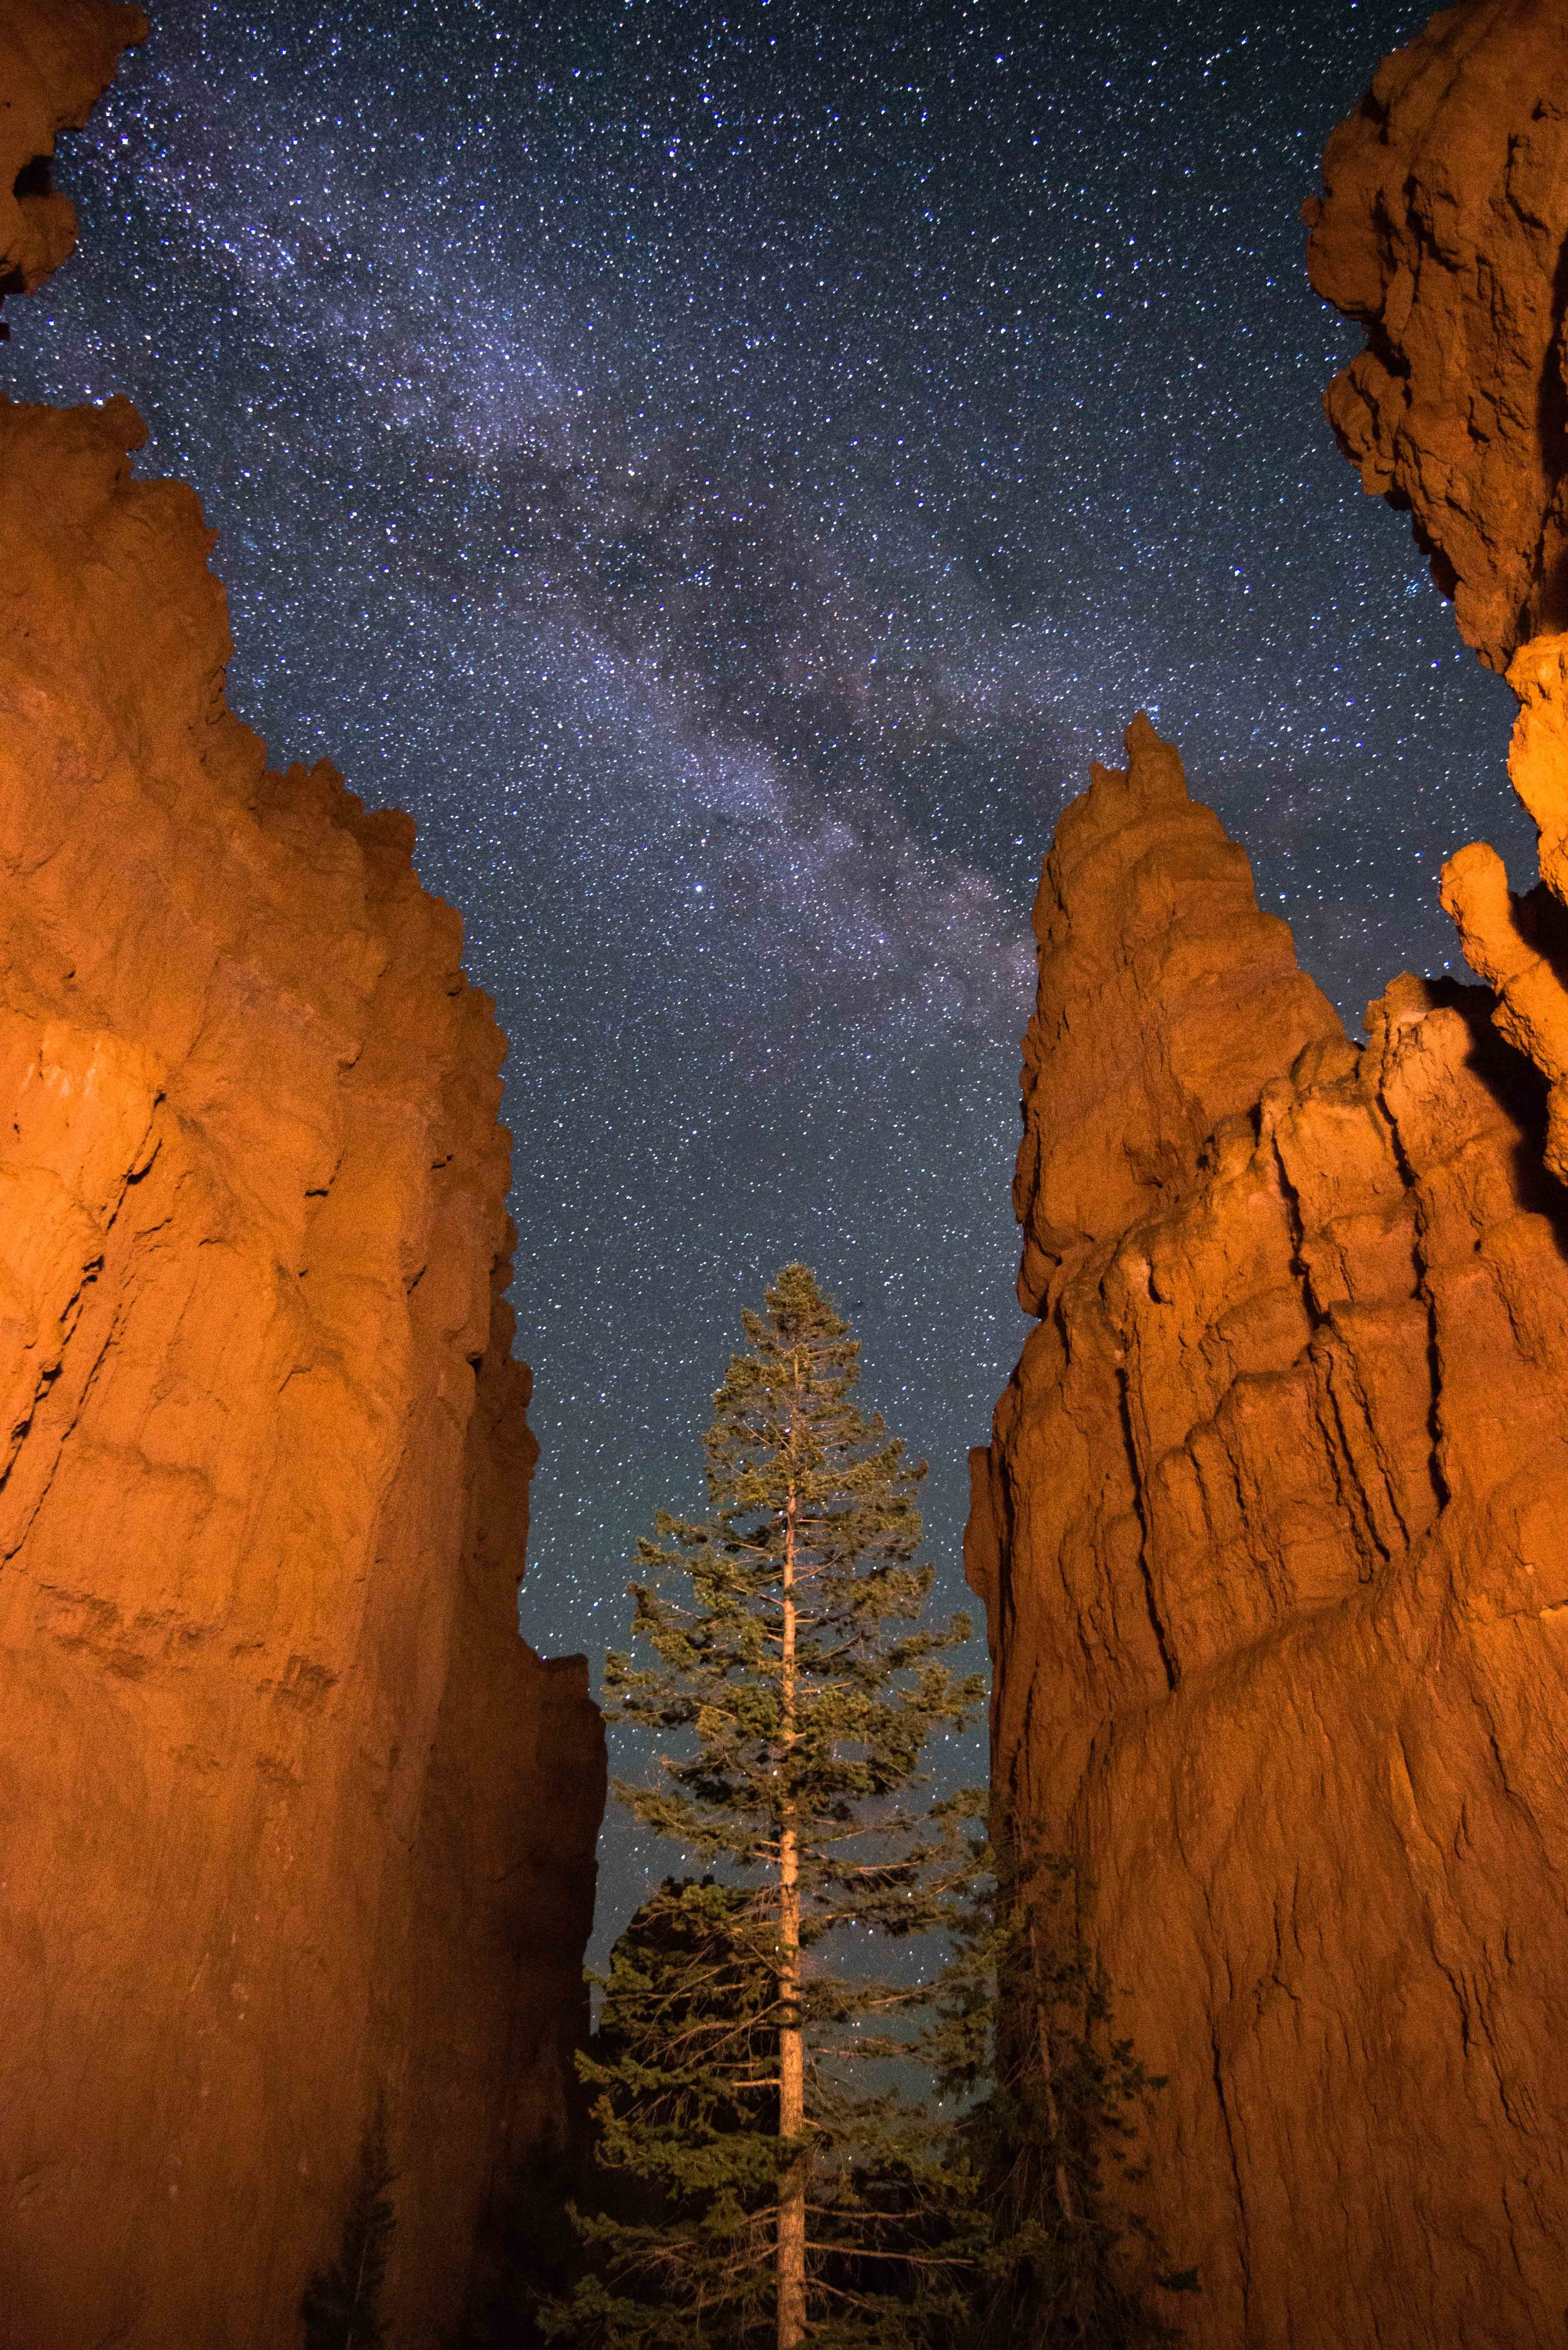 Hoodoos in Bryce Canyon with Painted Light, Tree, and Milky Way